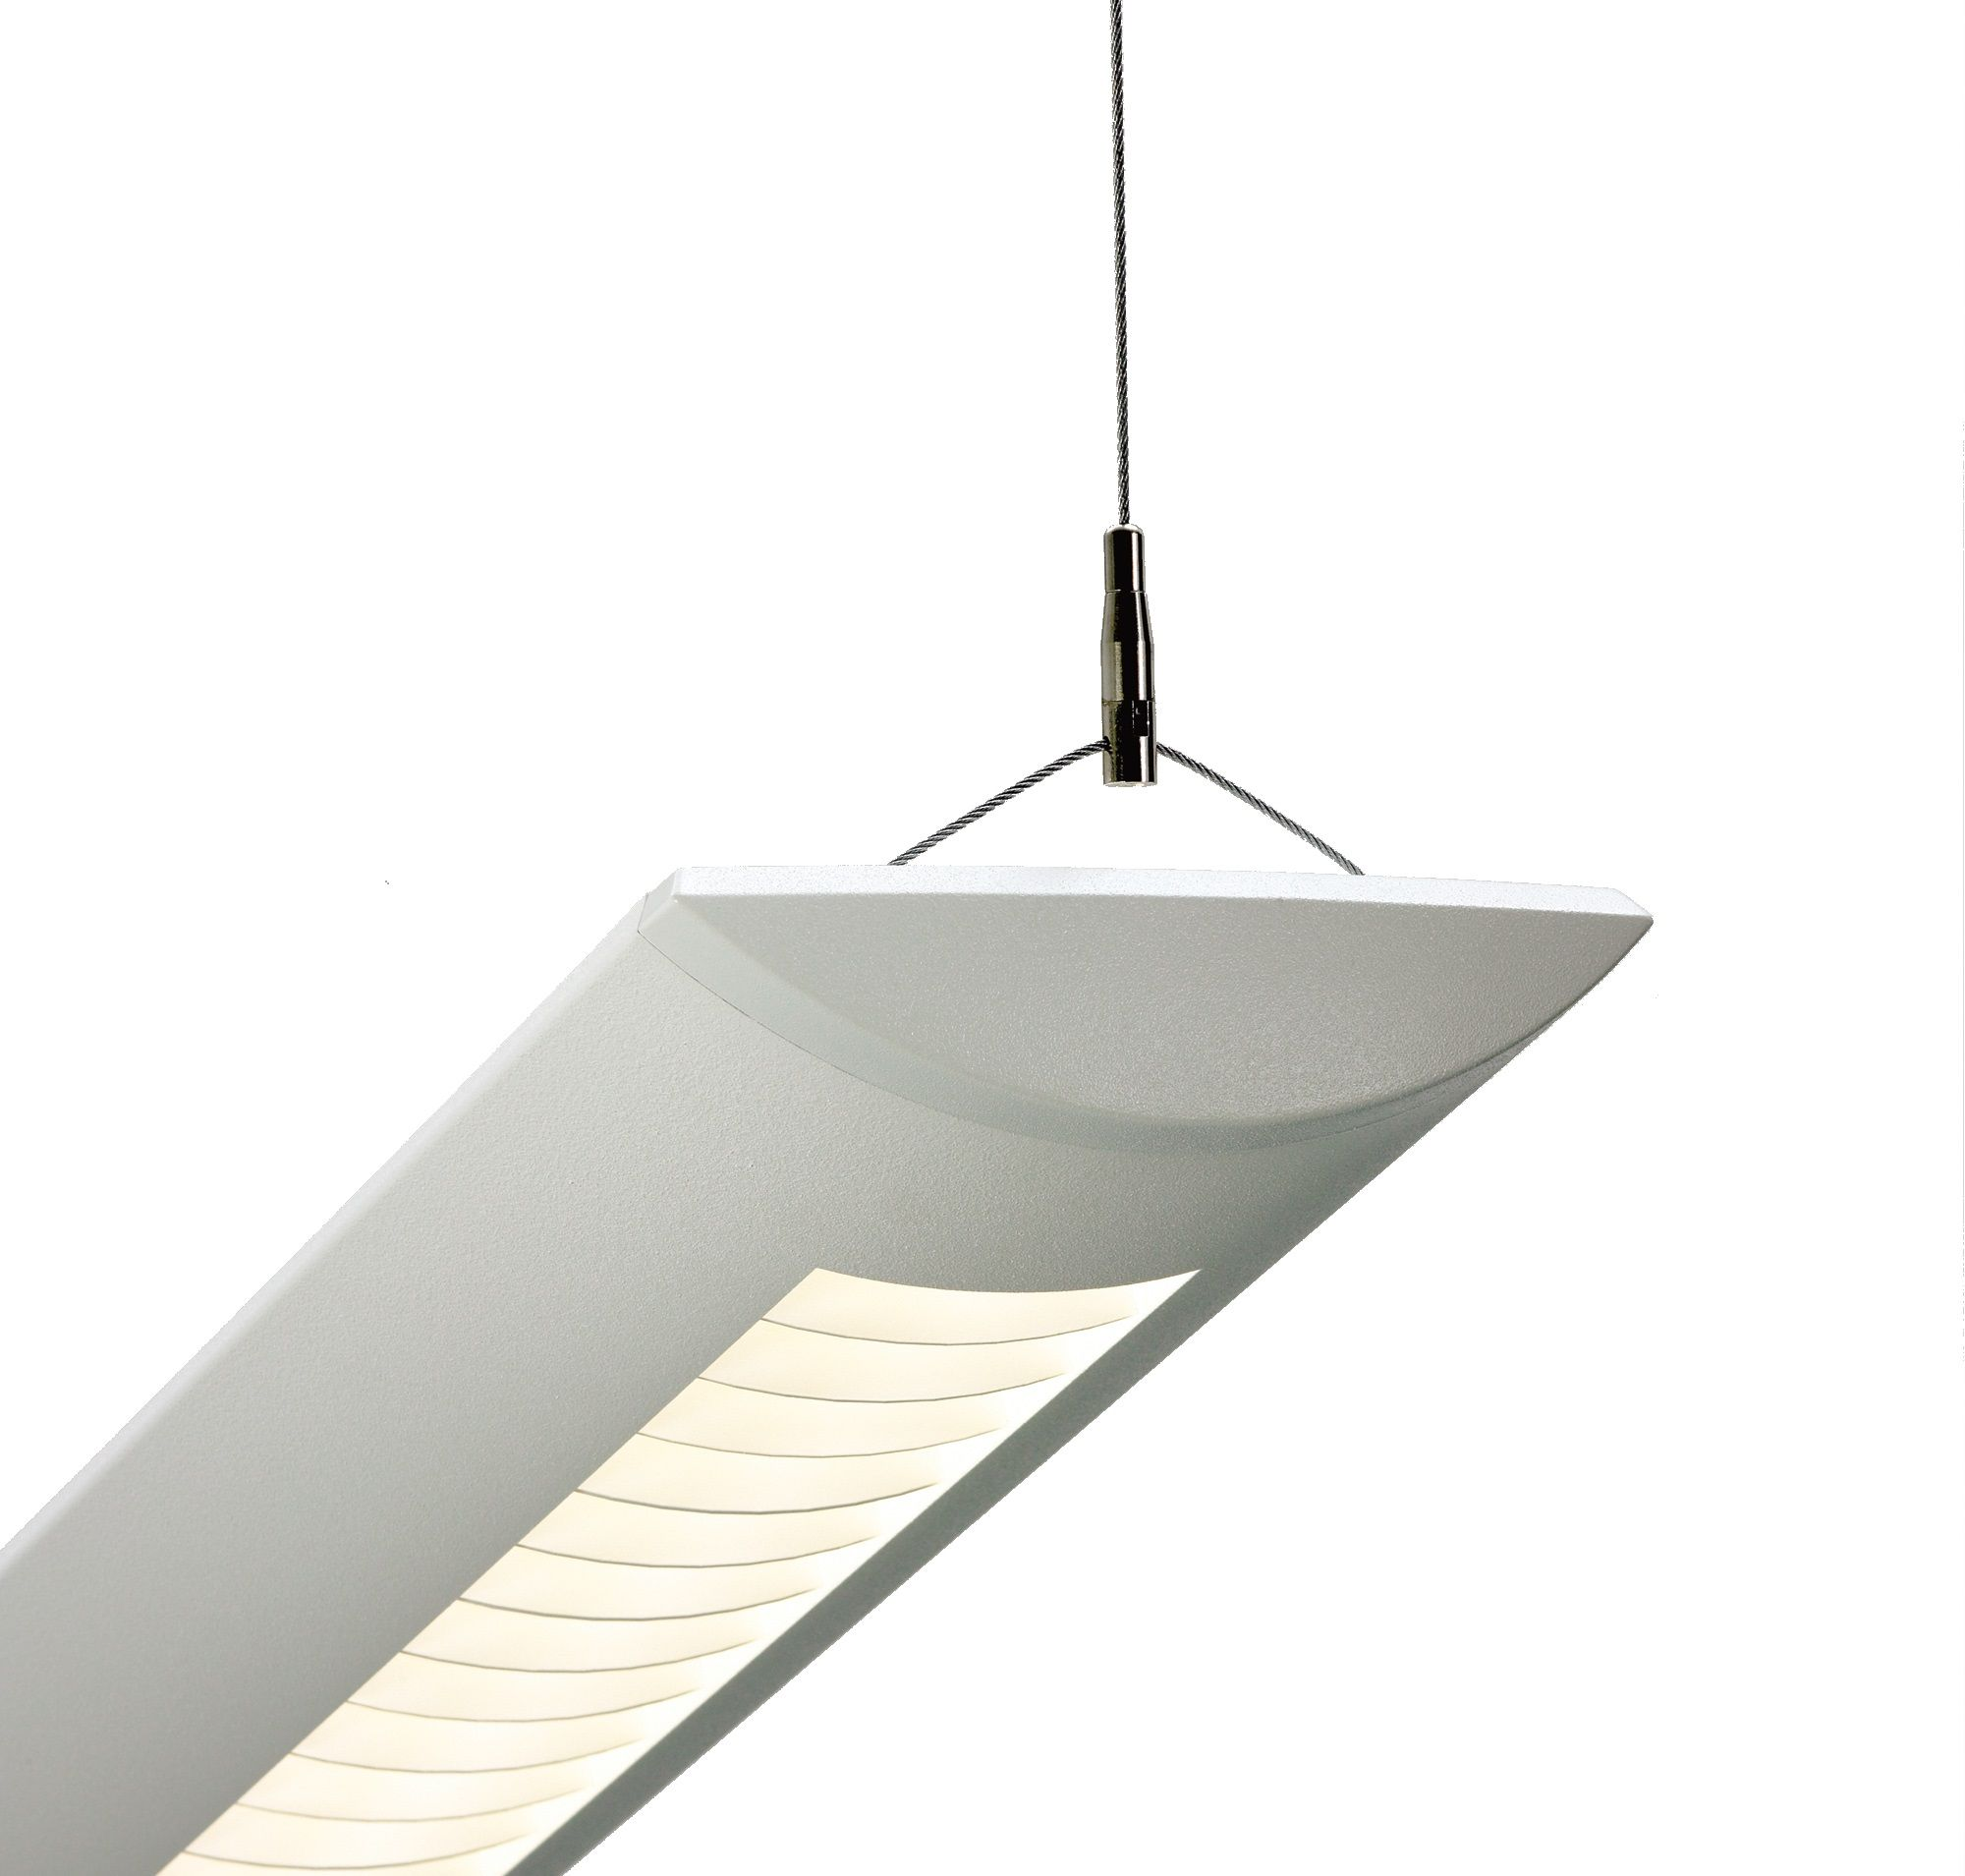 Litecontrol Arcos Indirect Direct Suspended Linear Fluorescent Pendant